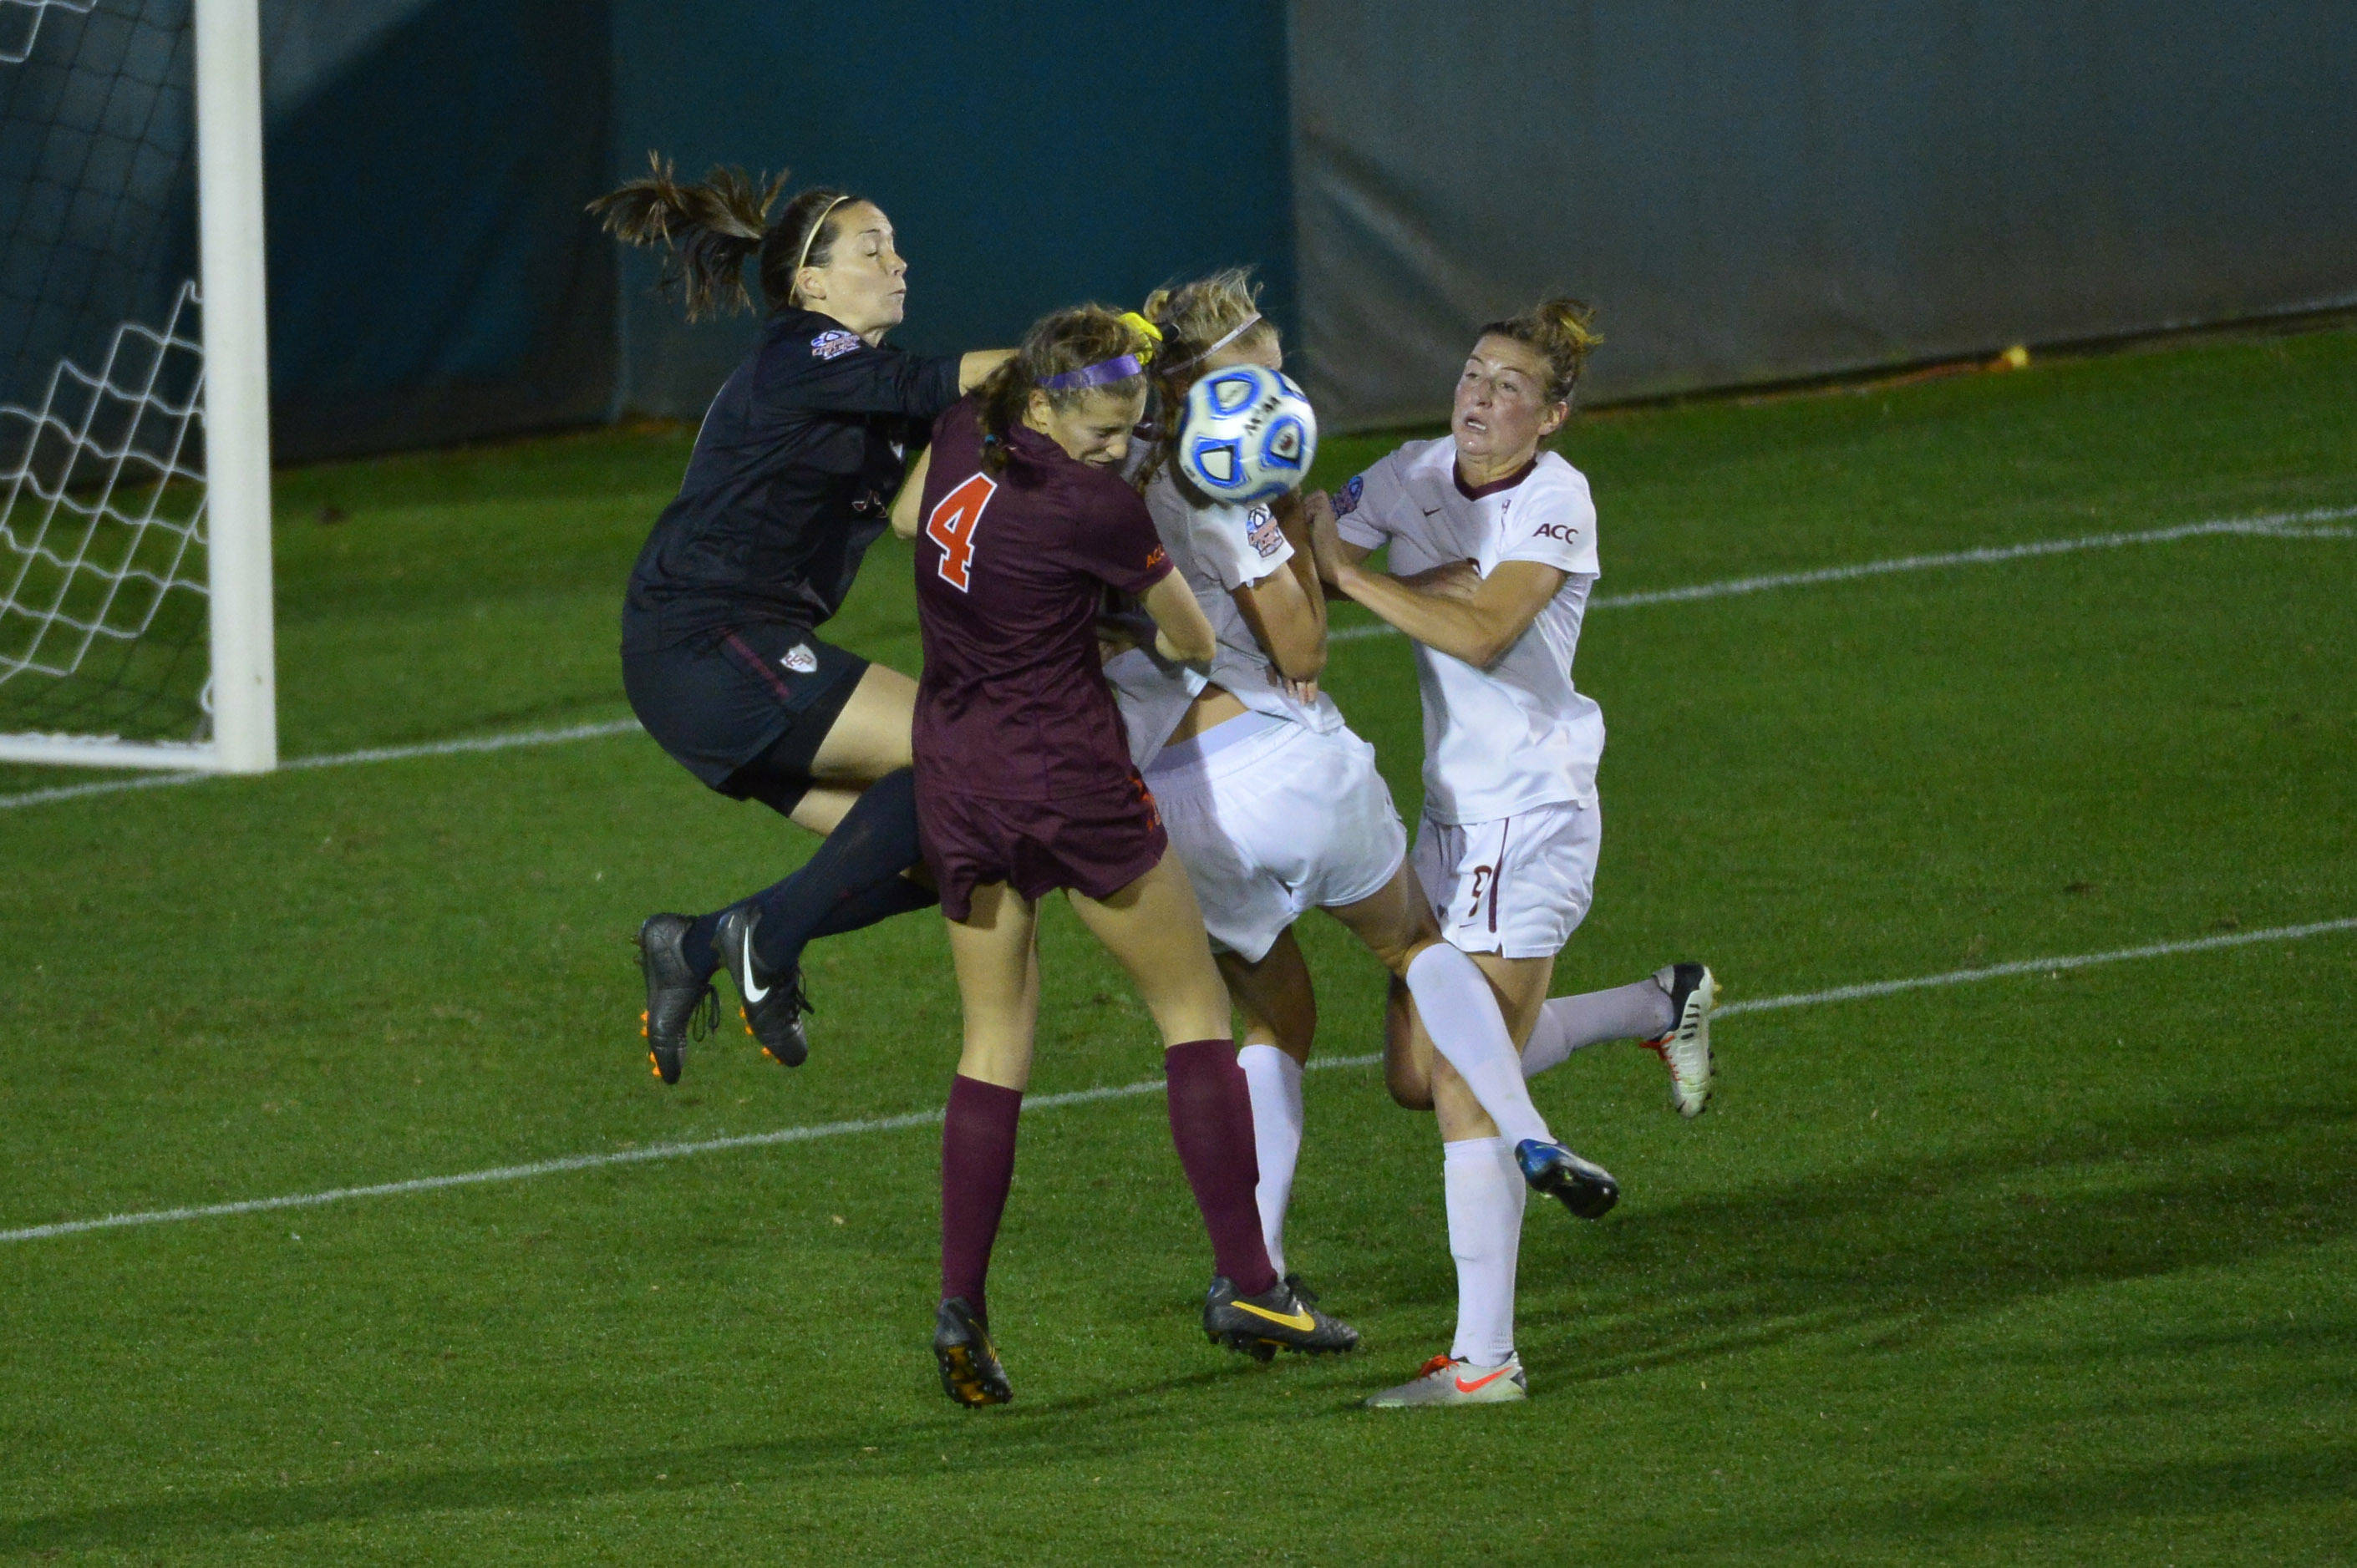 Dec 6, 2013; Cary, NC, USA; Florida State Seminoles goalkeeper Kelsey Wys (19) punches the ball out as midfielder Dagny Brynjarsdottir (7) and defender Kassey Kallman (9) help defend and Virginia Tech Hokies forward Shannon Mayrose (4) goes for the ball in the second half. The Seminoles defeated the Hokies 3-2 at WakeMed Soccer Park. Mandatory Credit: Bob Donnan-USA TODAY Sports